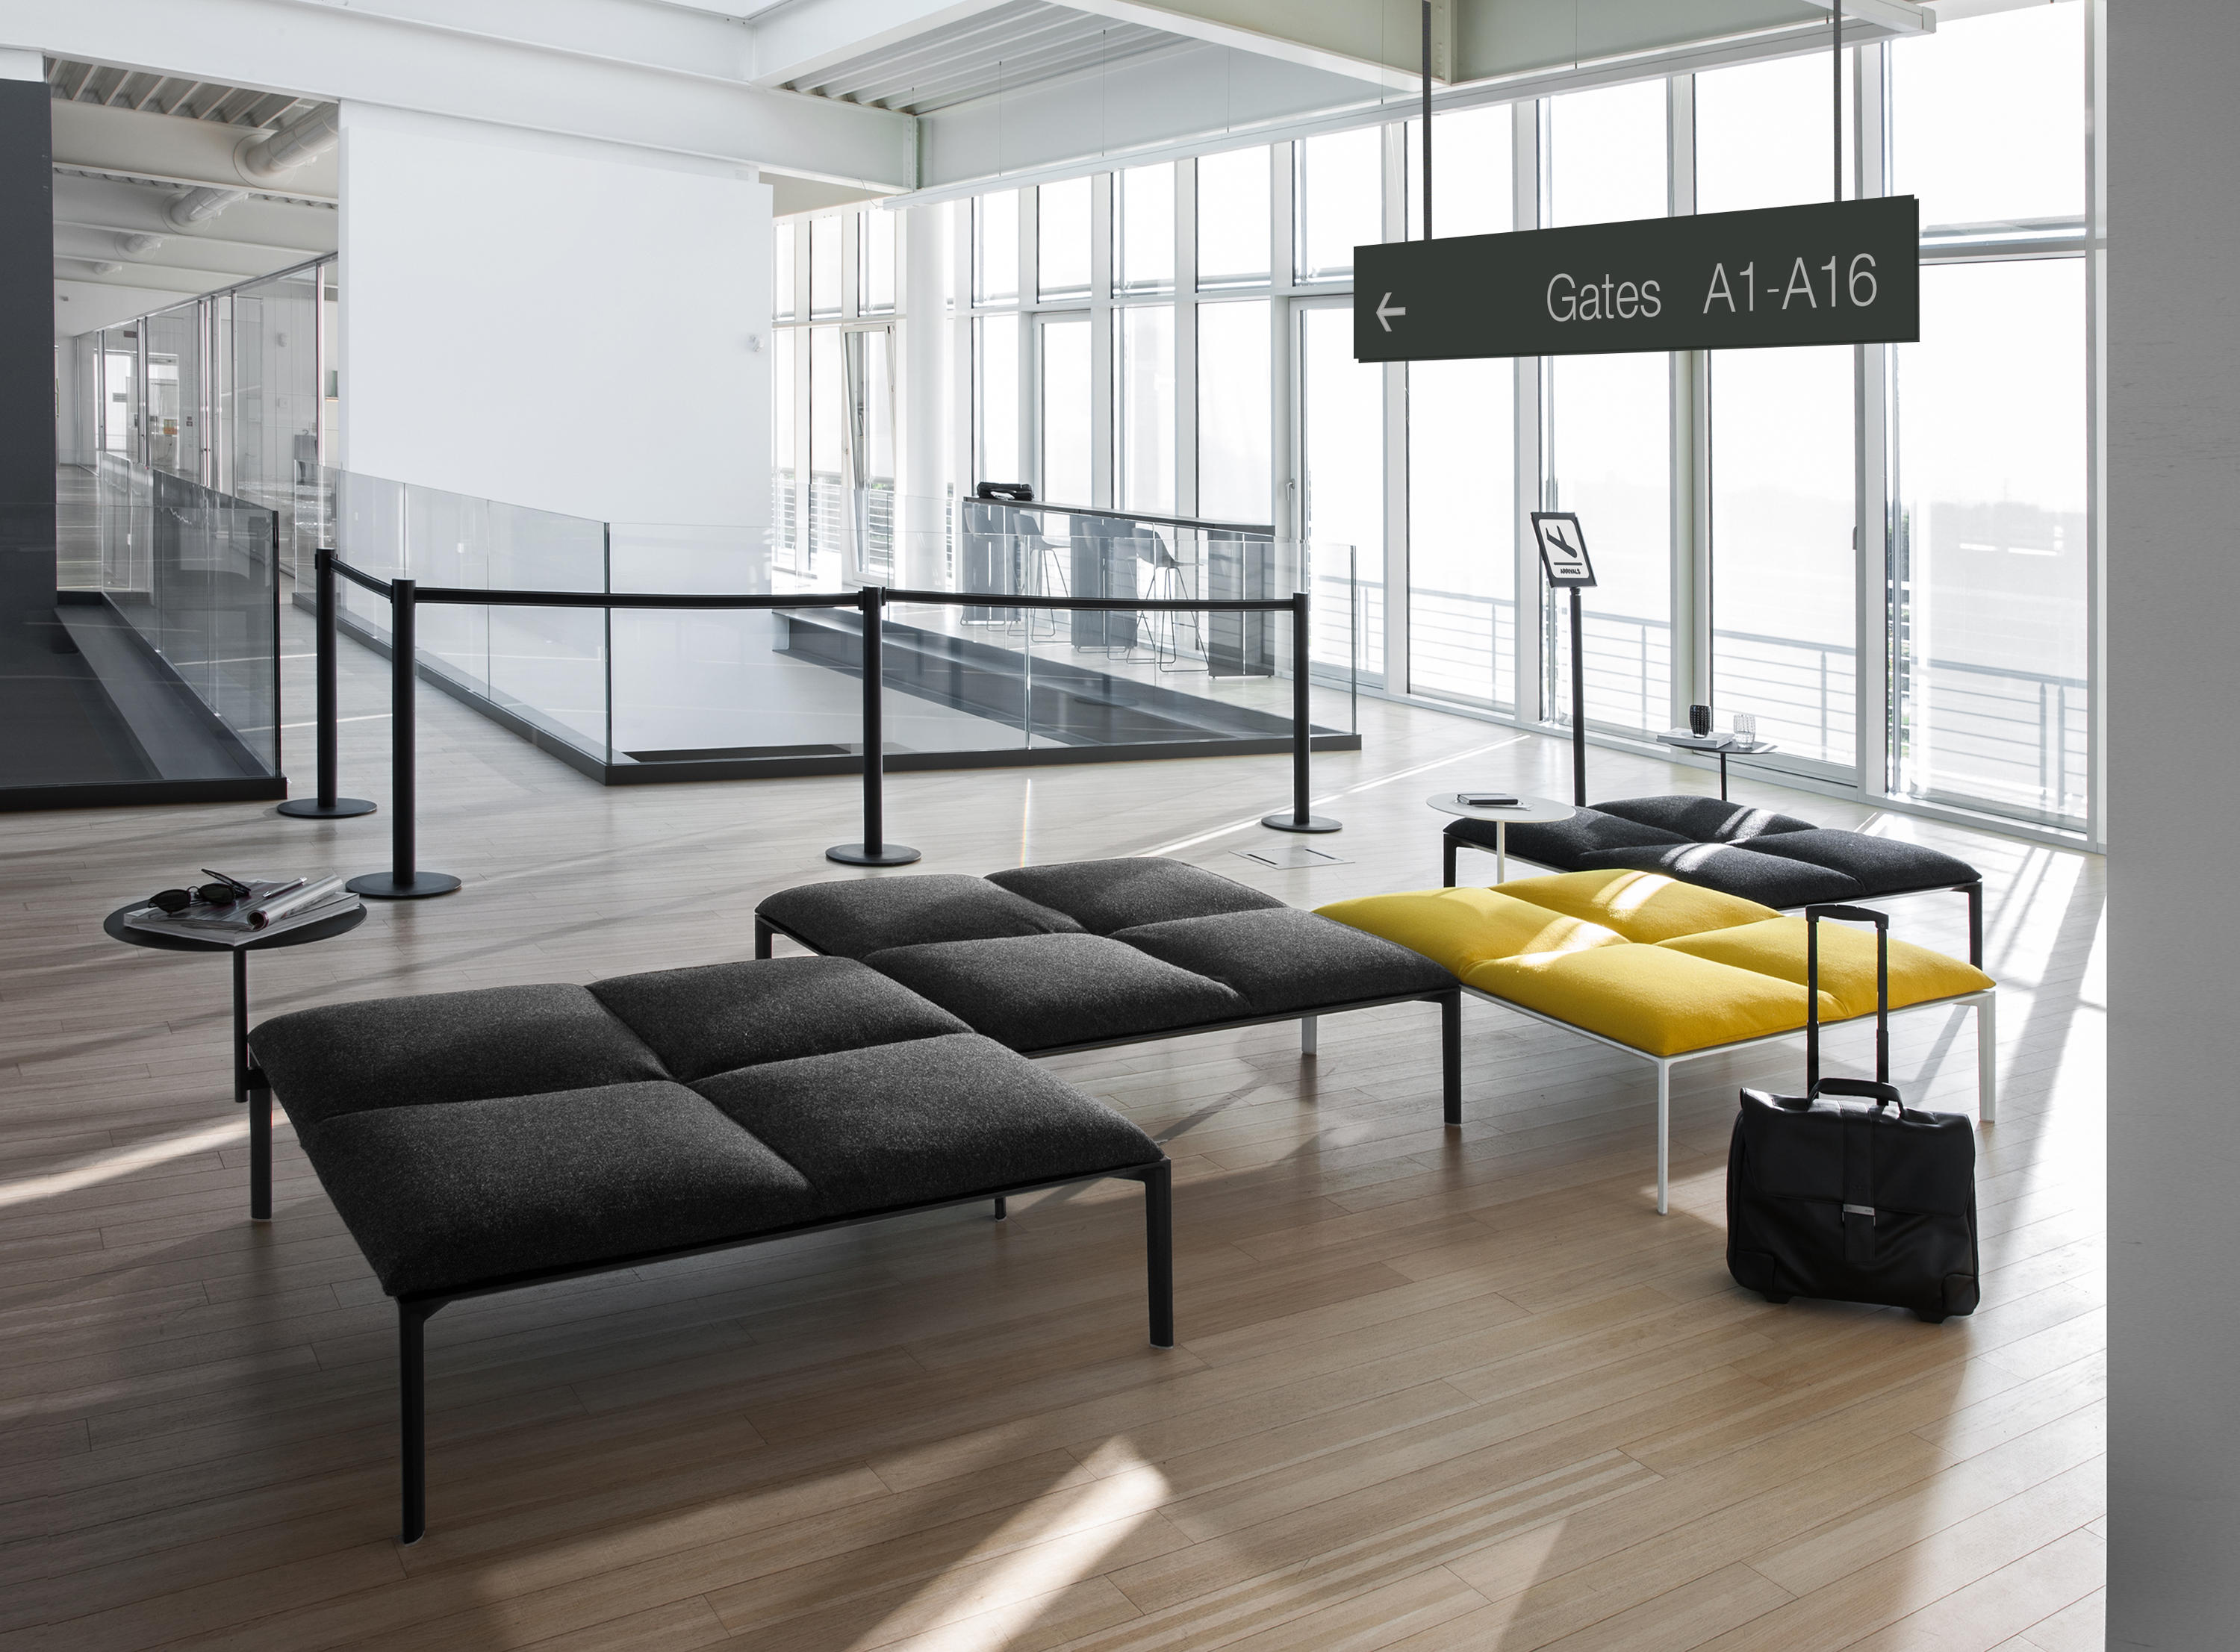 Beau Add Bench System By Lapalma Add Bench System By Lapalma ...